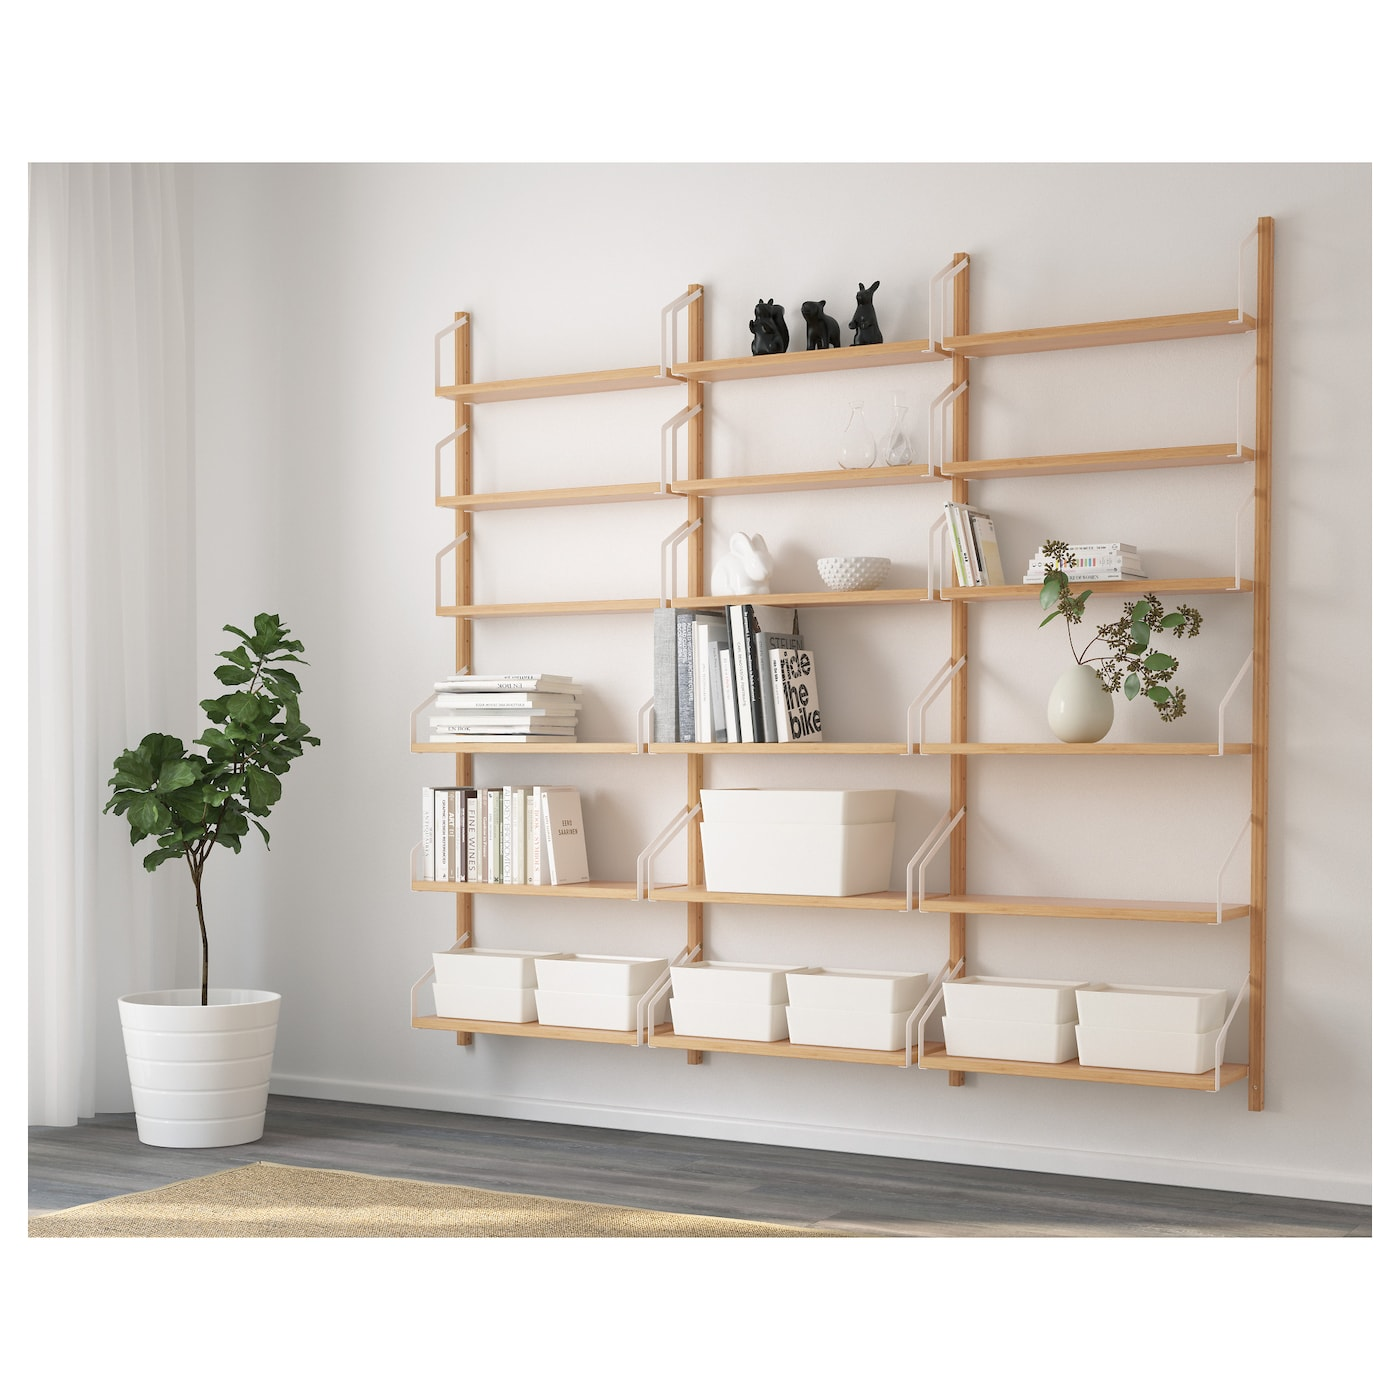 wall shelving units svaln 196 s wall mounted shelf combination bamboo 193 x 25 x 28105